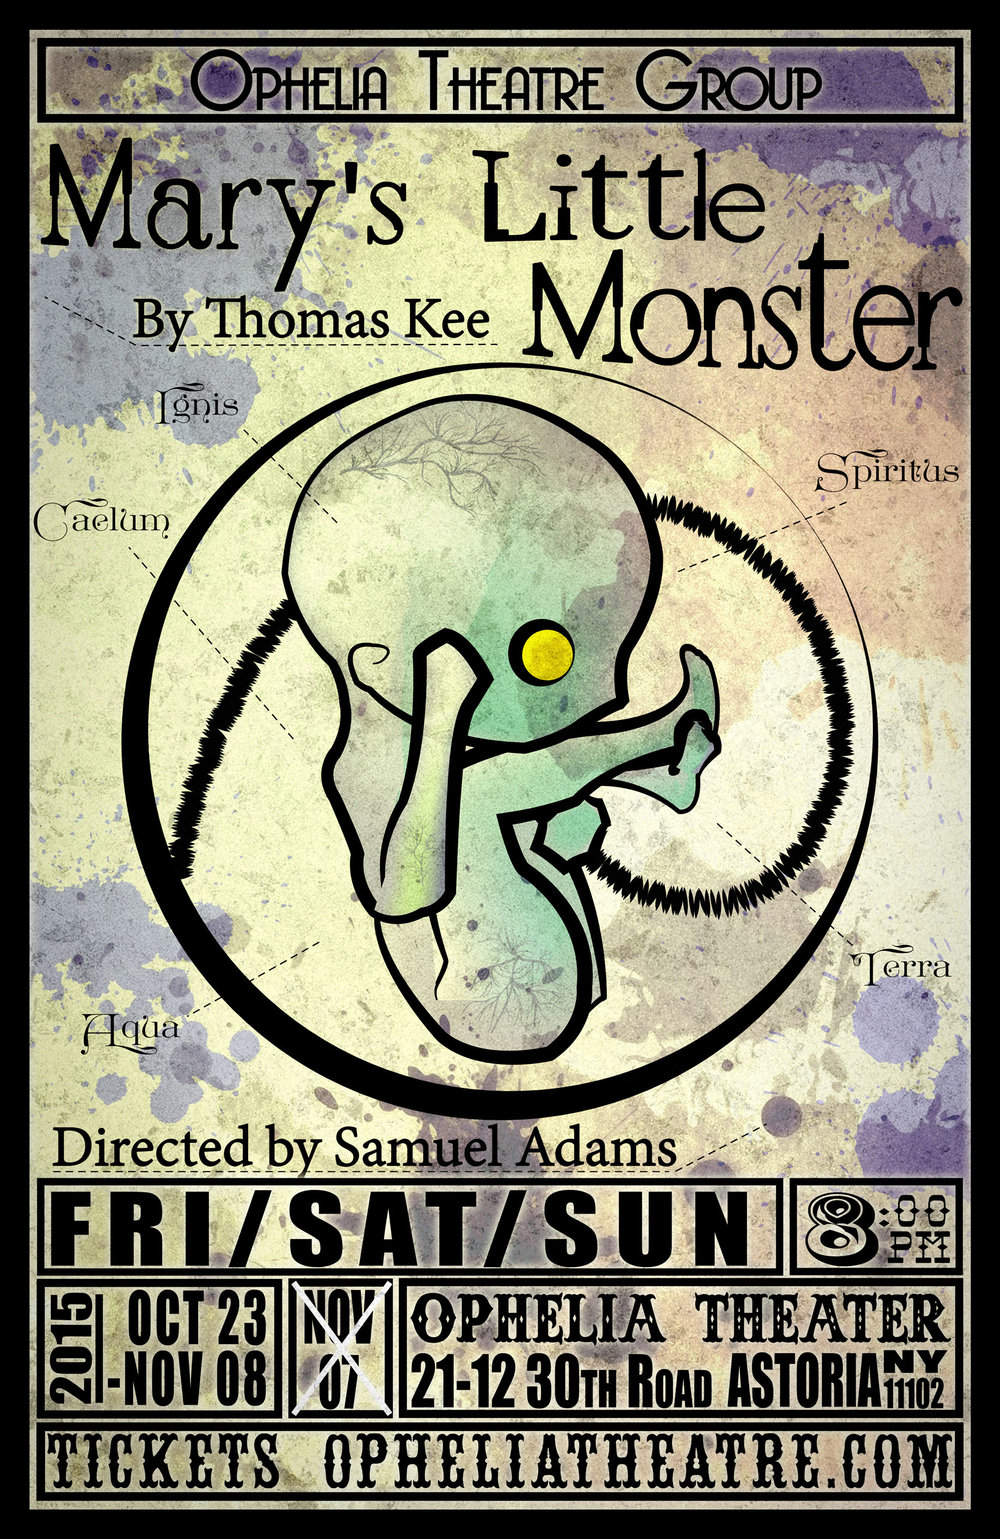 Mary's Little Monster     Written Thomas Kee